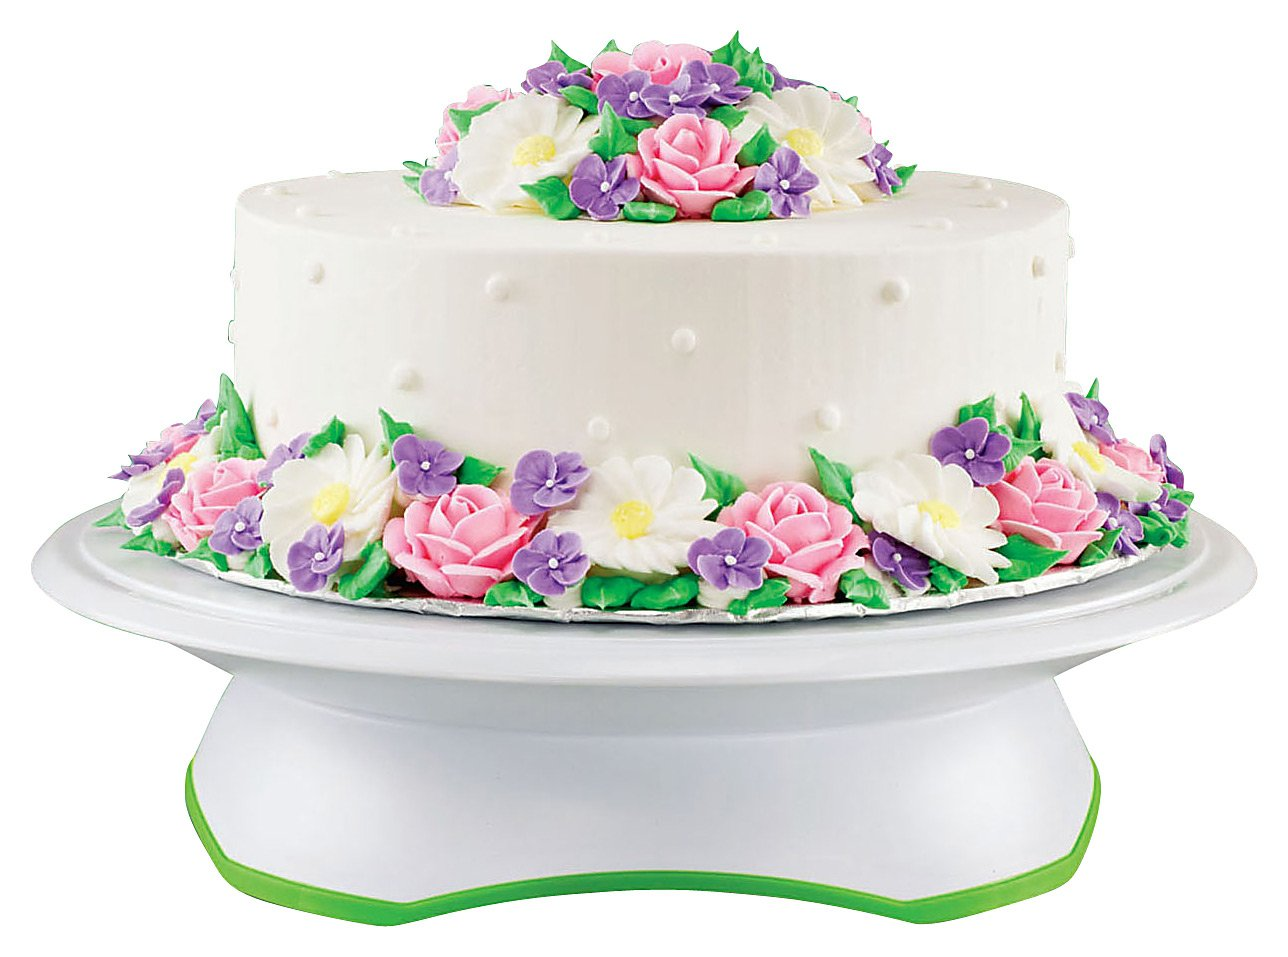 Review of Wilton Trim-N-Turn Ultra Rotating Cake Stand